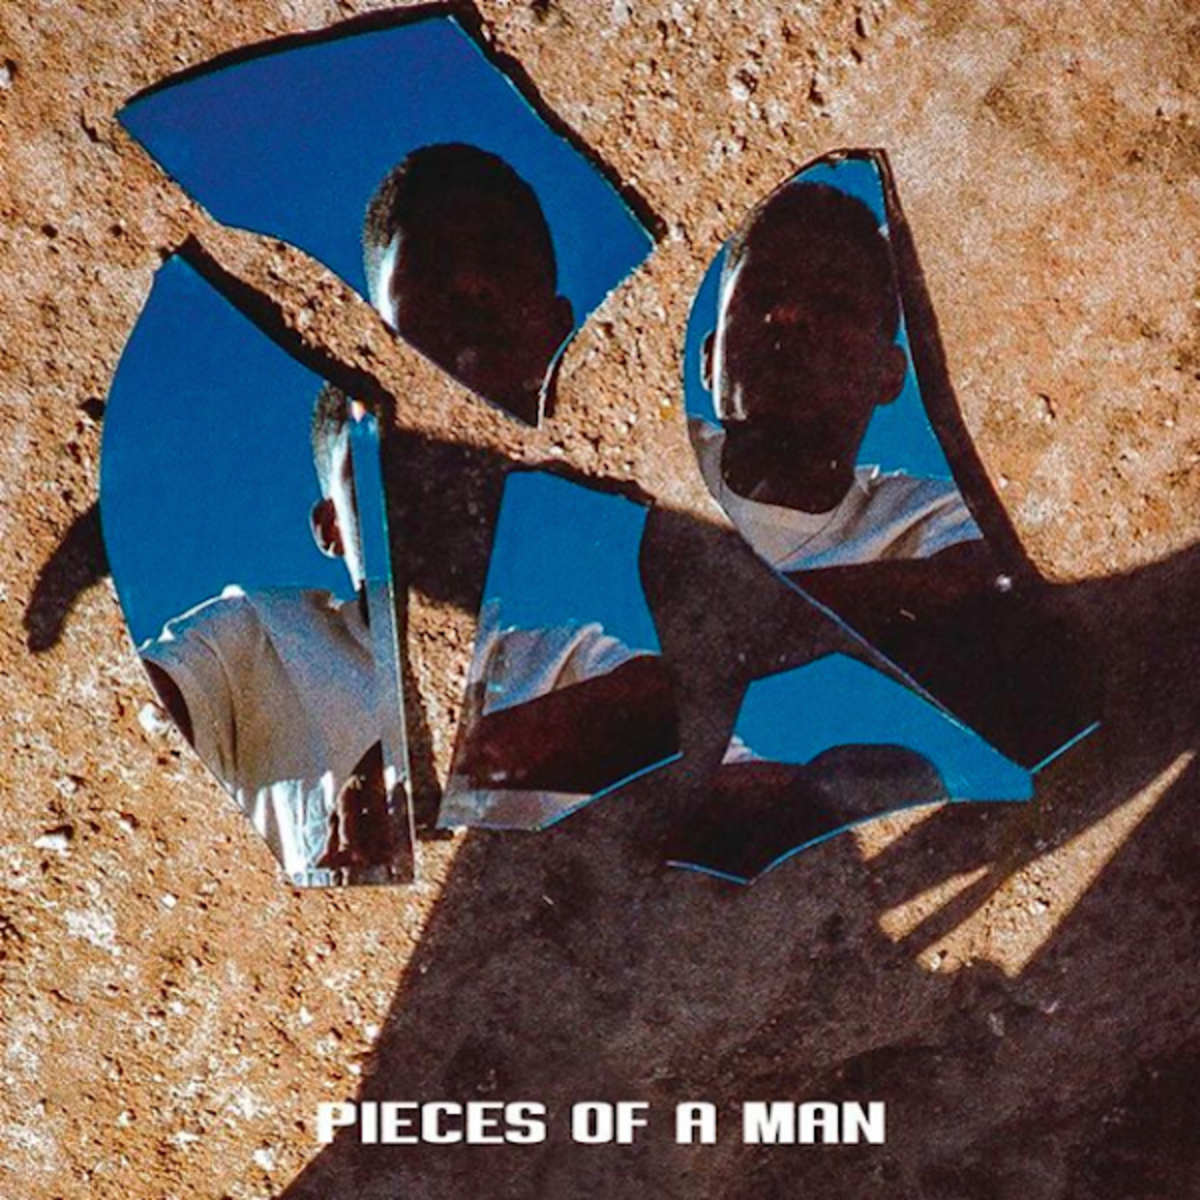 mick-jenkins-pieces-of-a-man-stream.png